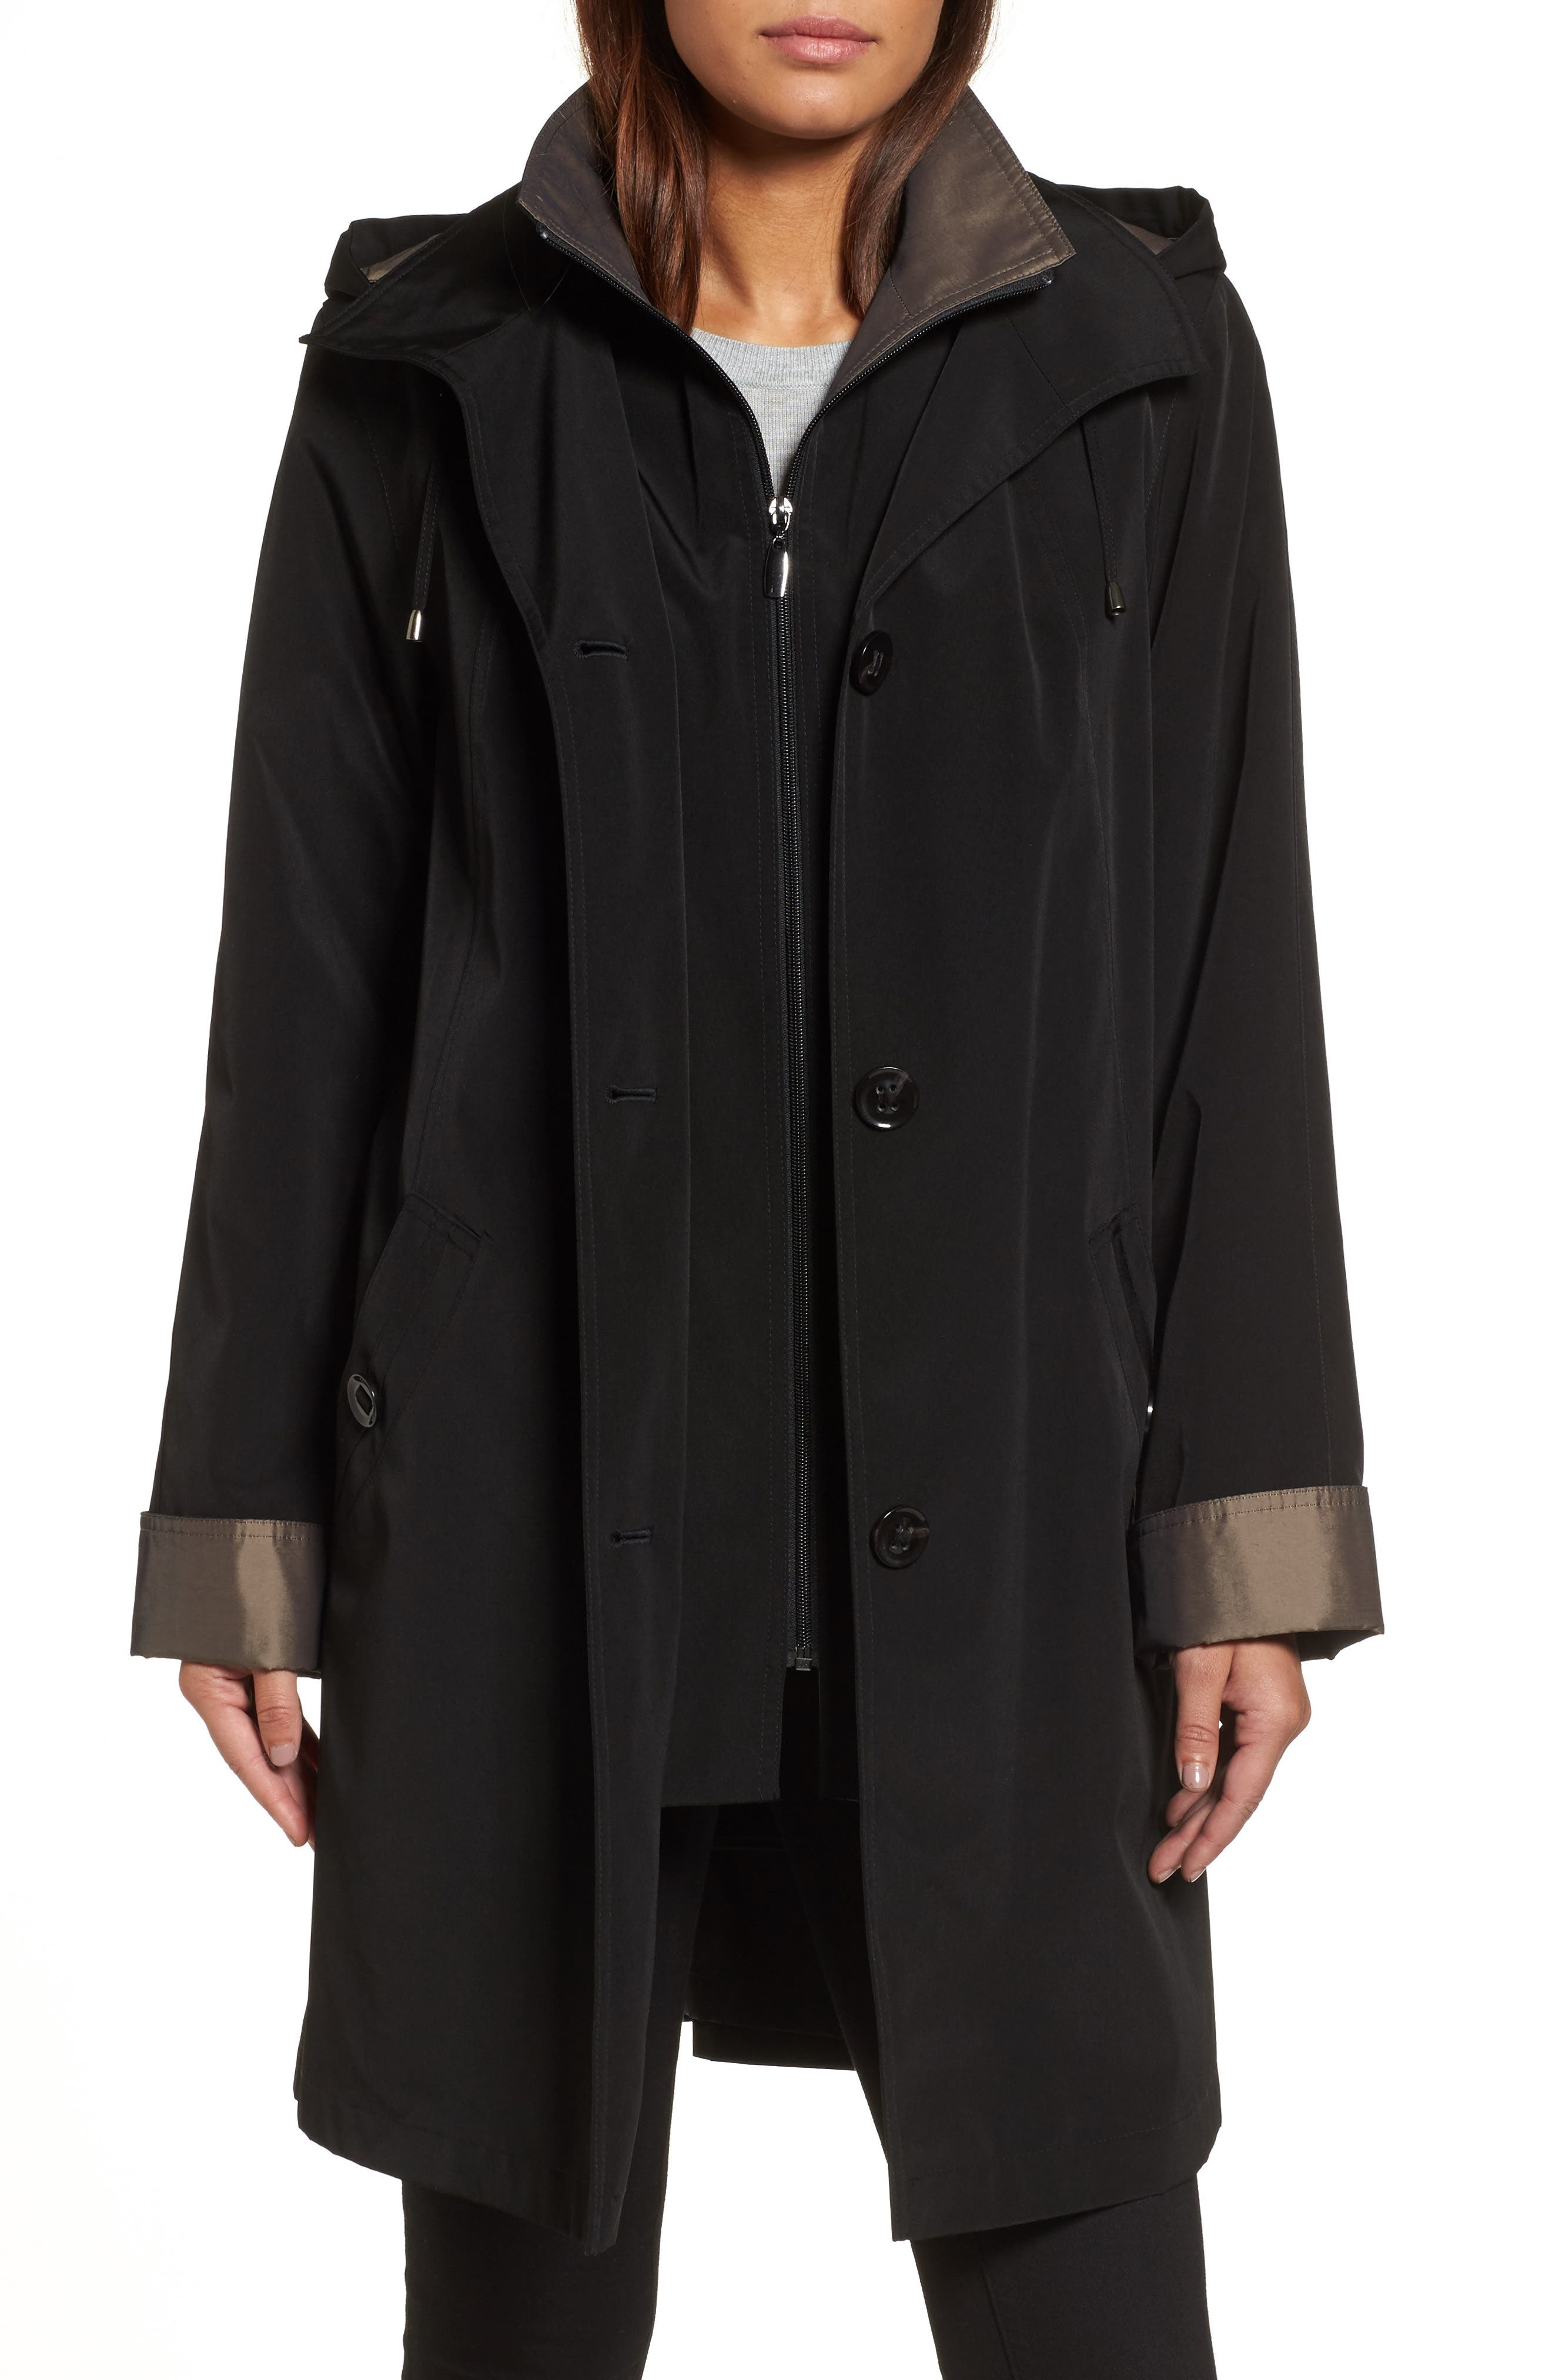 Main Image - Gallery A-Line Raincoat with Detachable Hood & Liner (Online Exclusive)